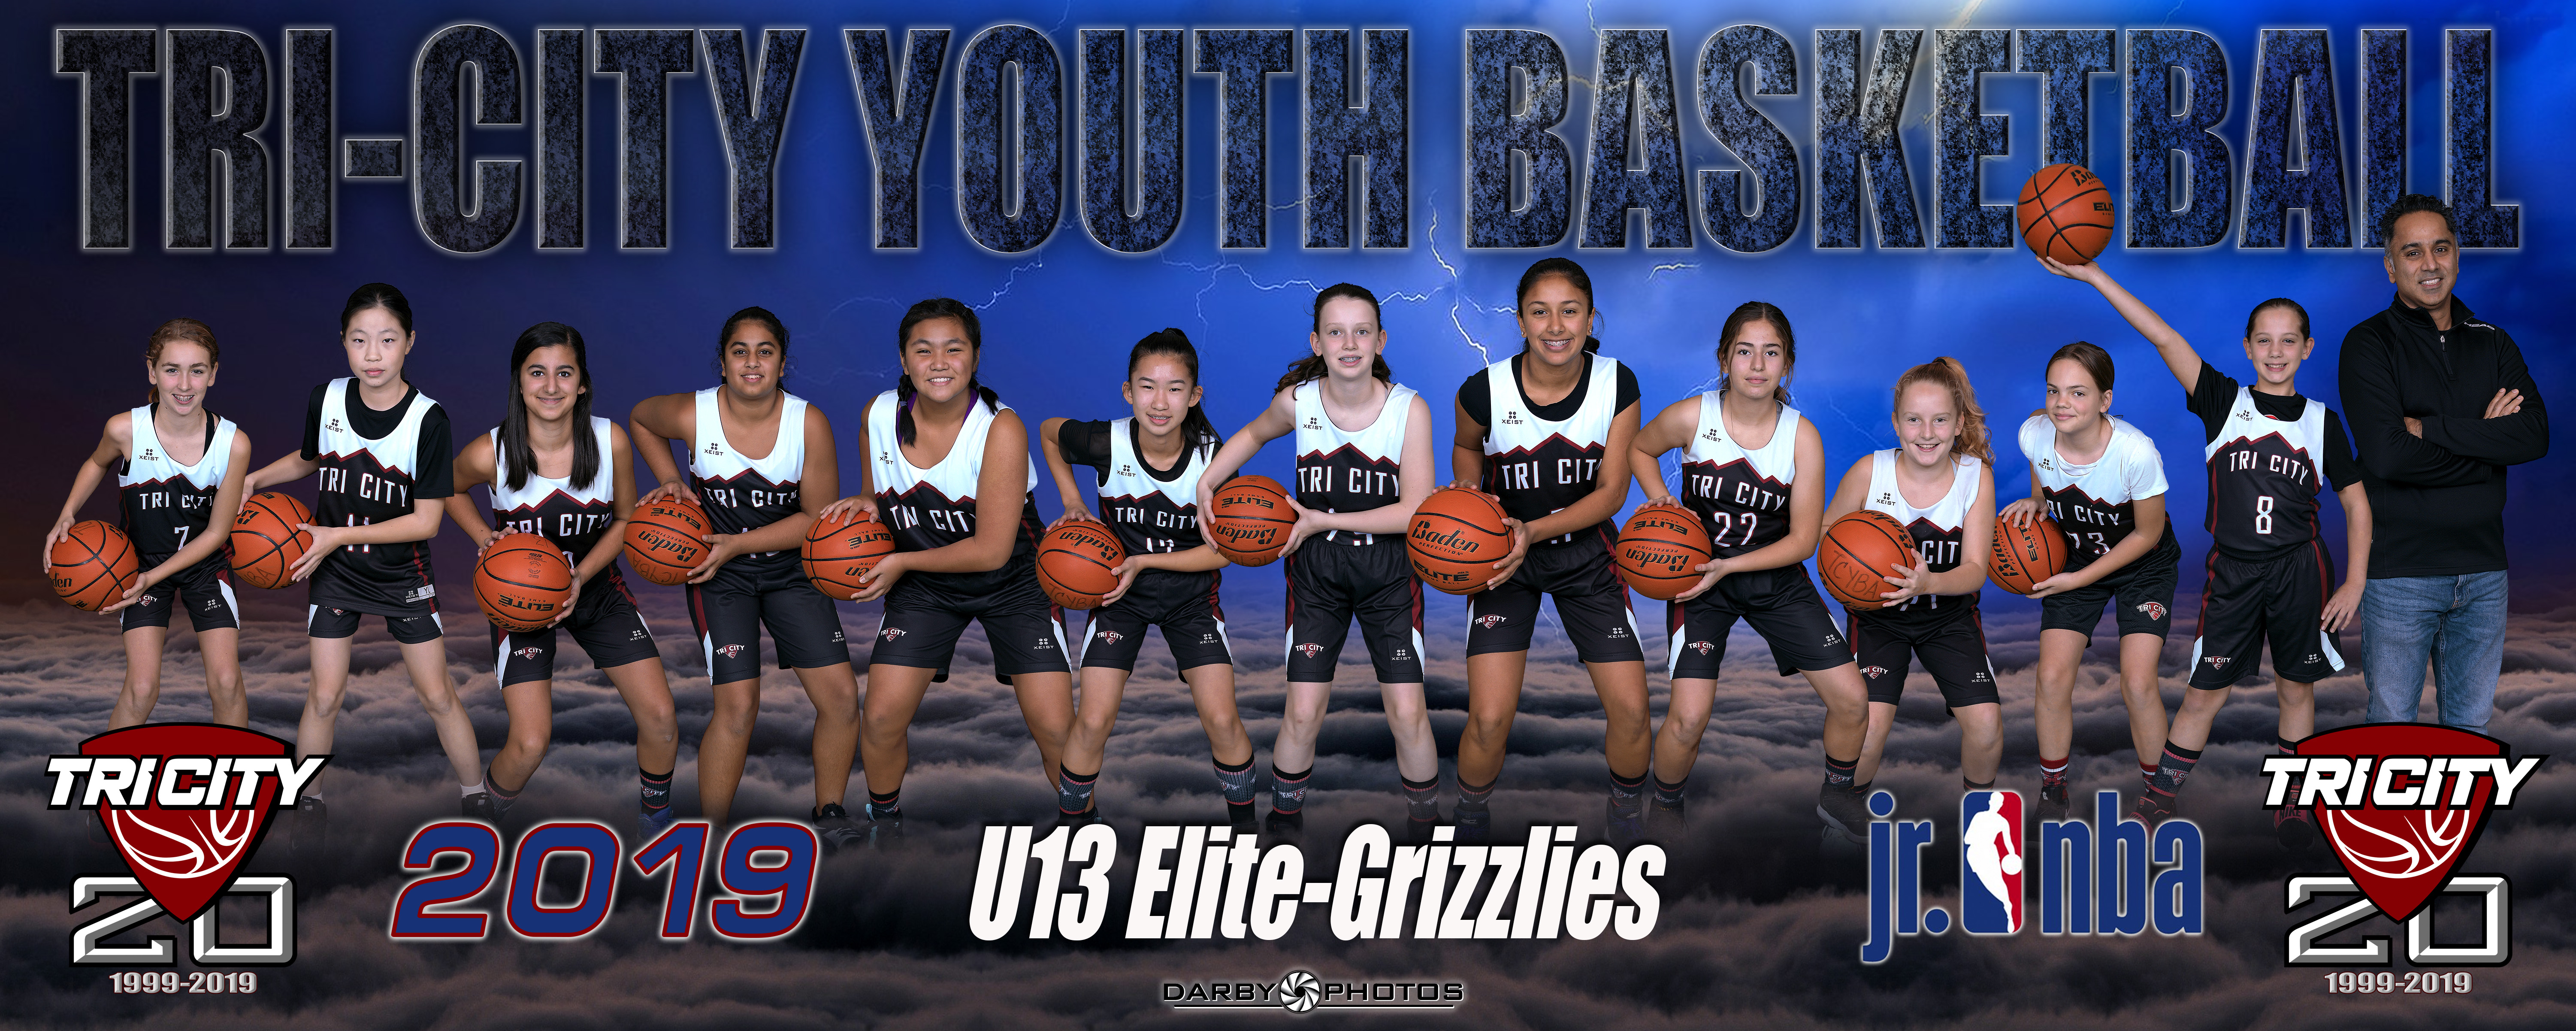 U13 Elite Grizzlies 2019--20